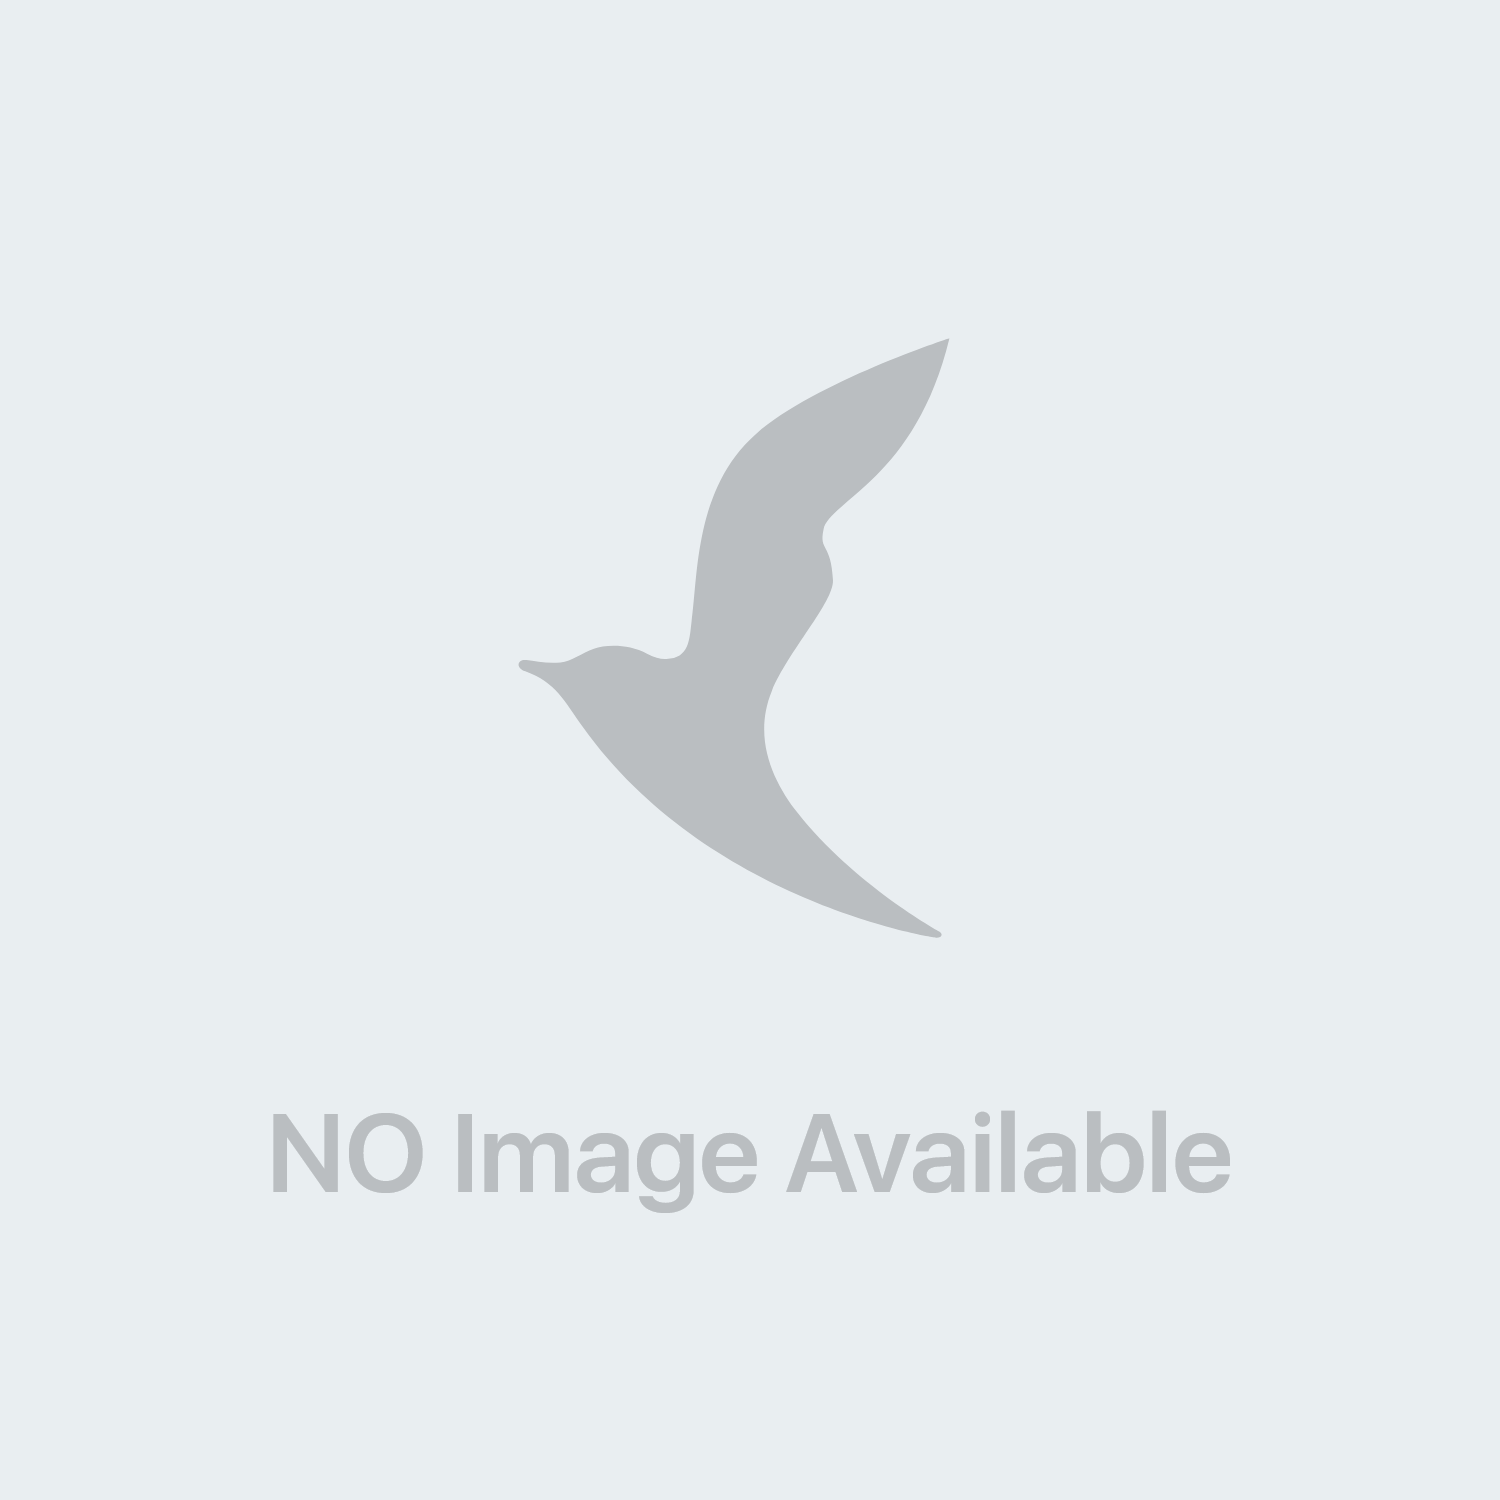 Weleda Coldcream Crema Idratante Viso 30 Ml